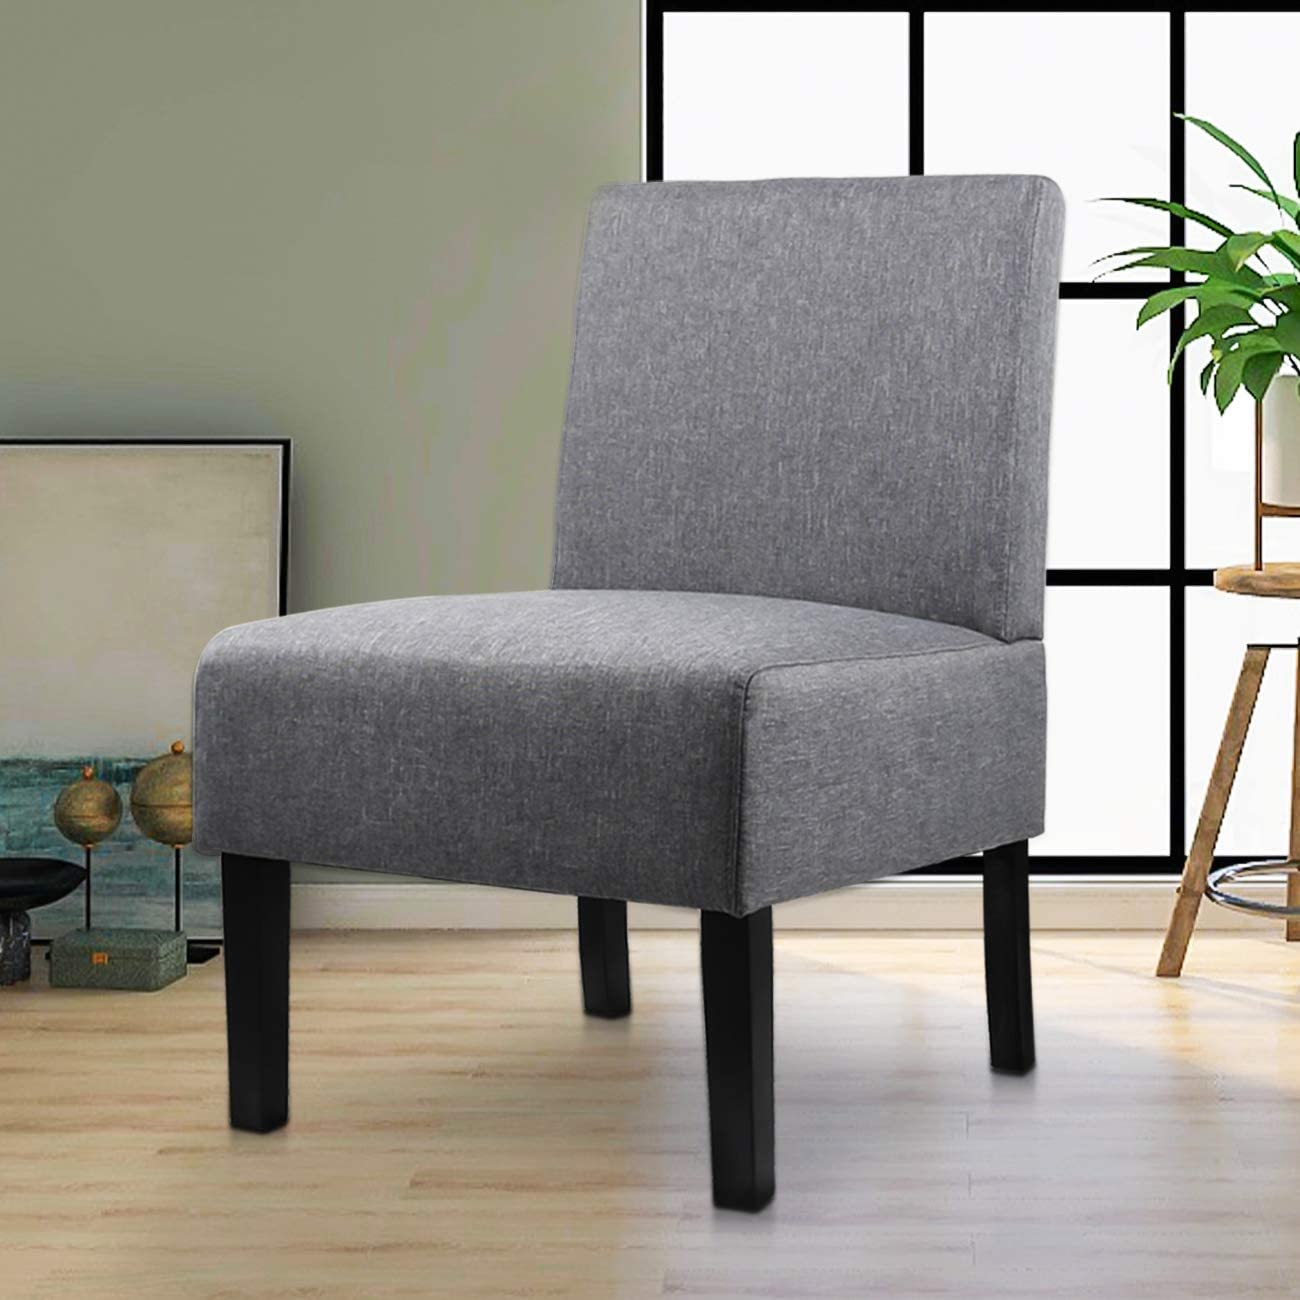 Modern Fabric Armless Accent Chair Decorative Slipper Chair Vanity Chair For Bedroom Desk, Corner Side Chair Living Room Furniture Grey – Walmart For Goodyear Slipper Chairs (View 9 of 15)